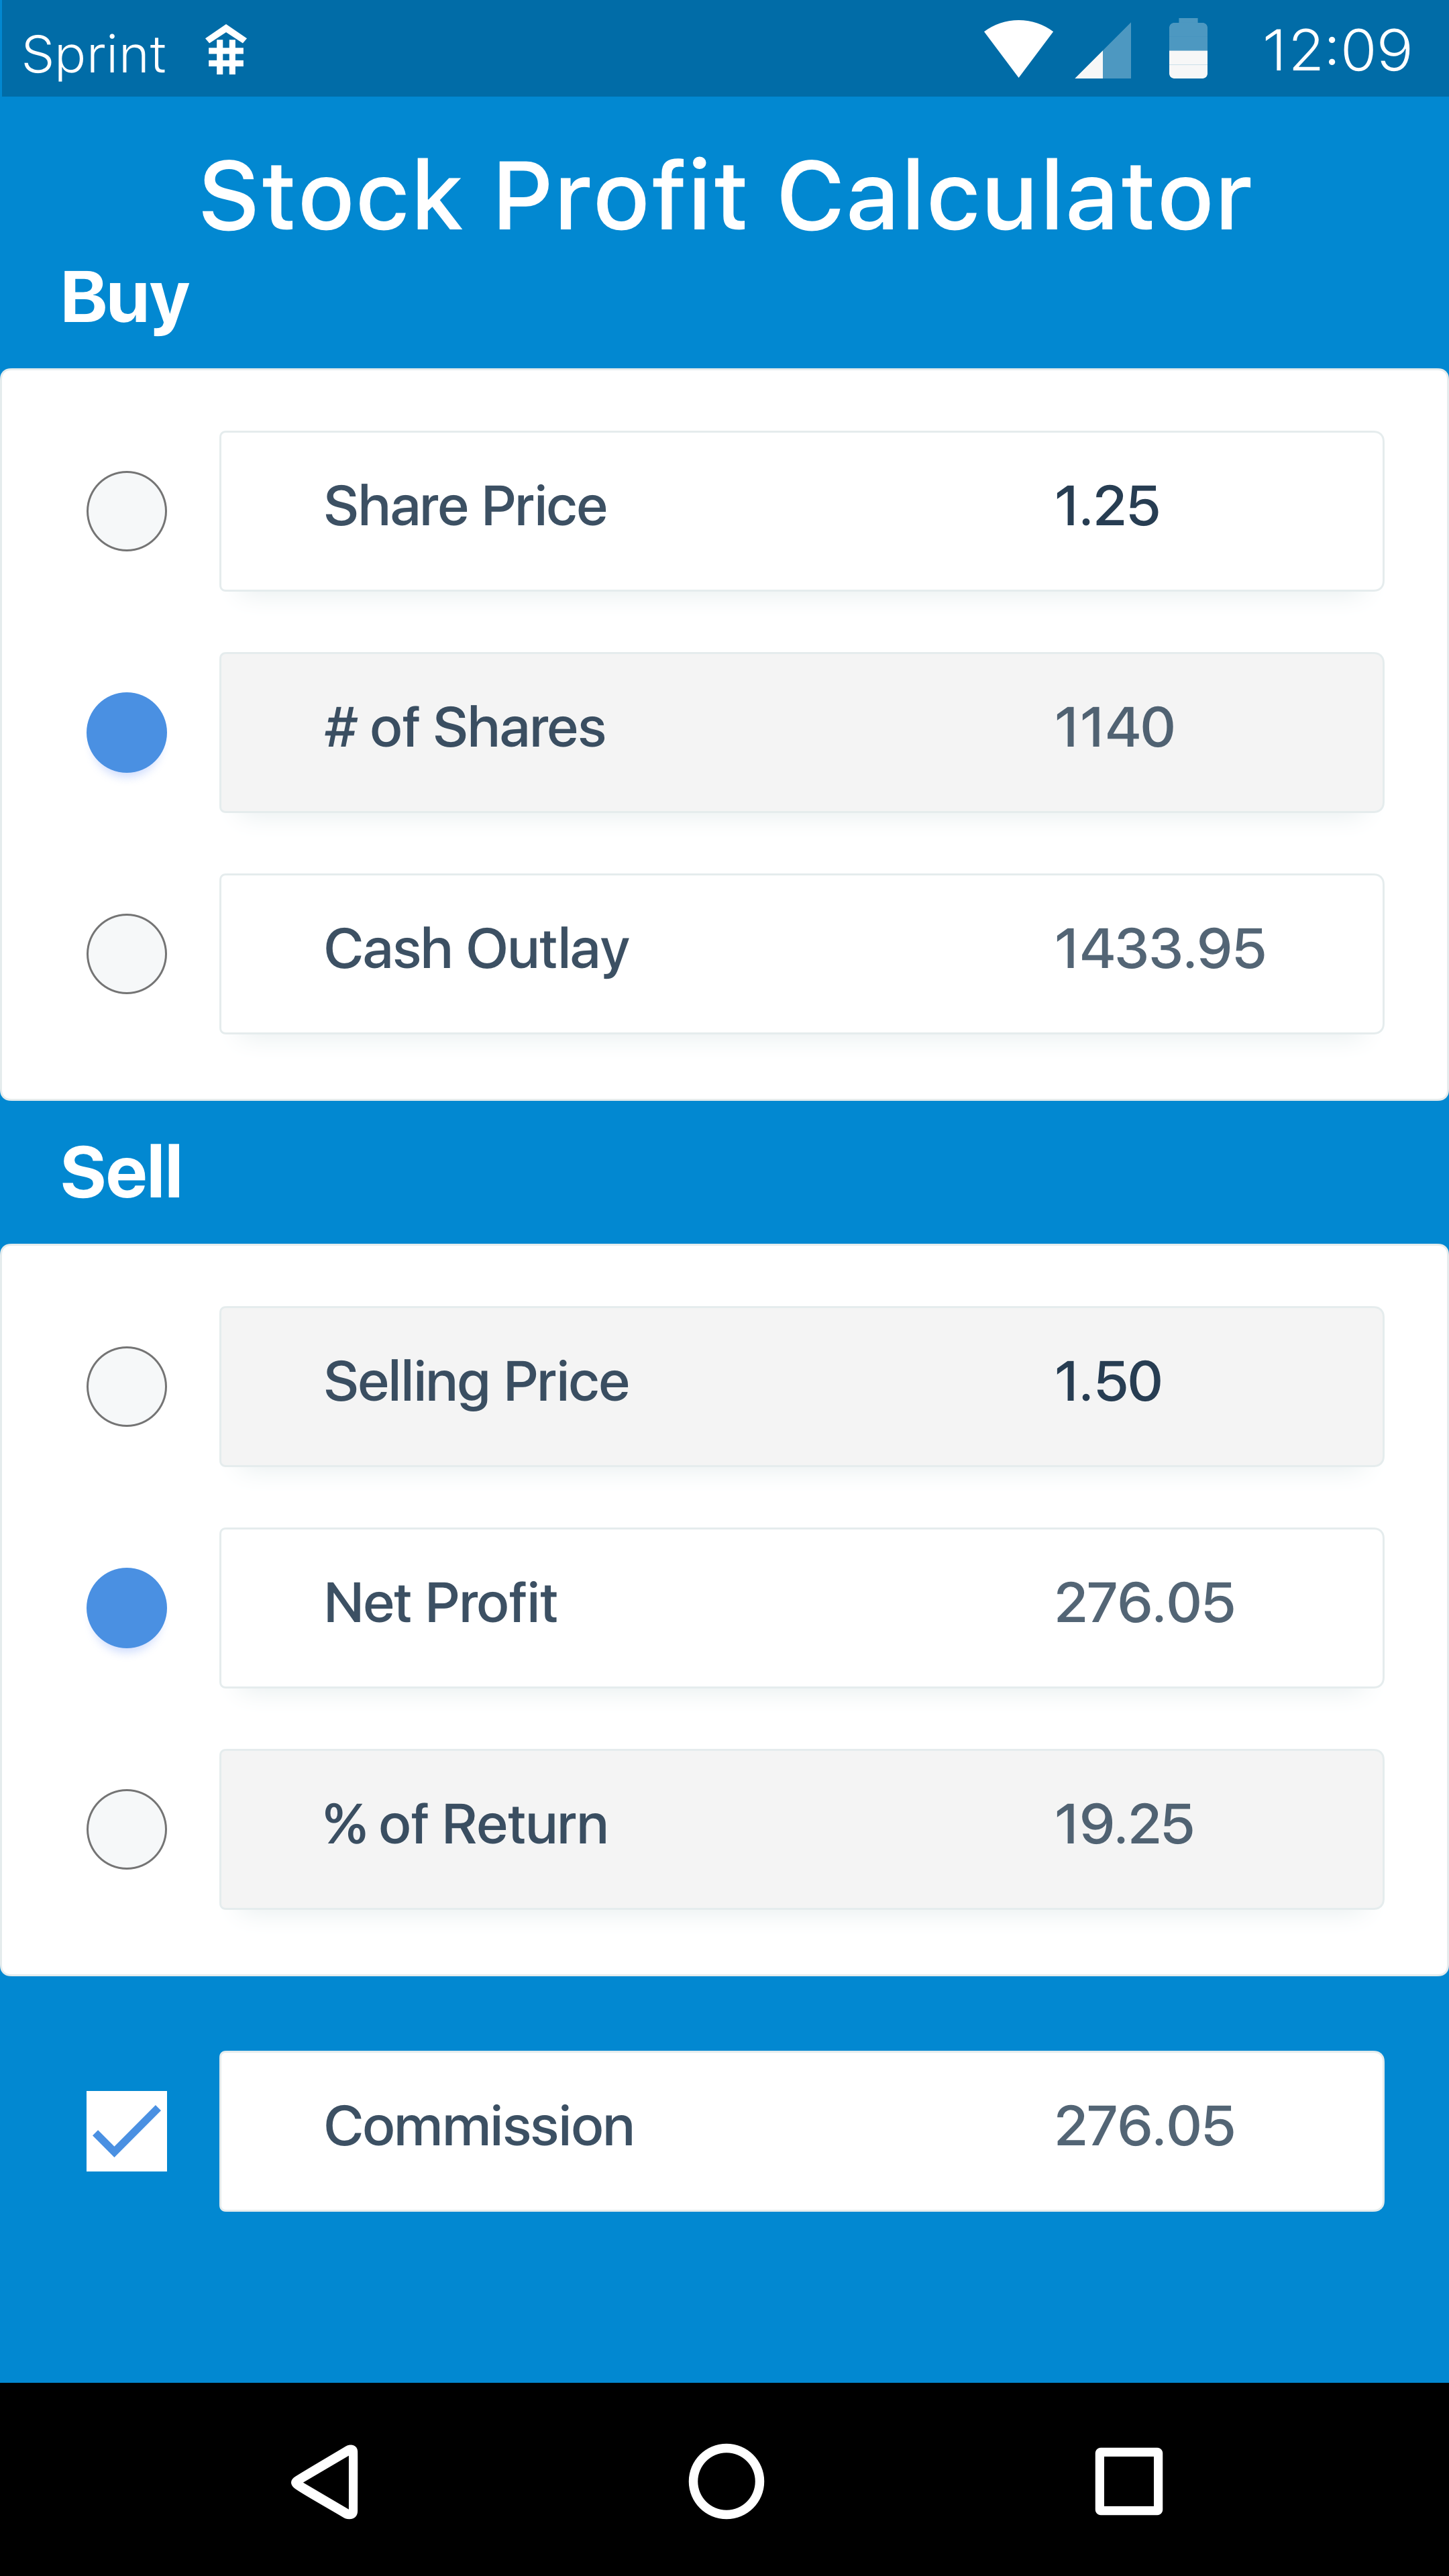 Deciding when to buy and sell stocks is difficult enough